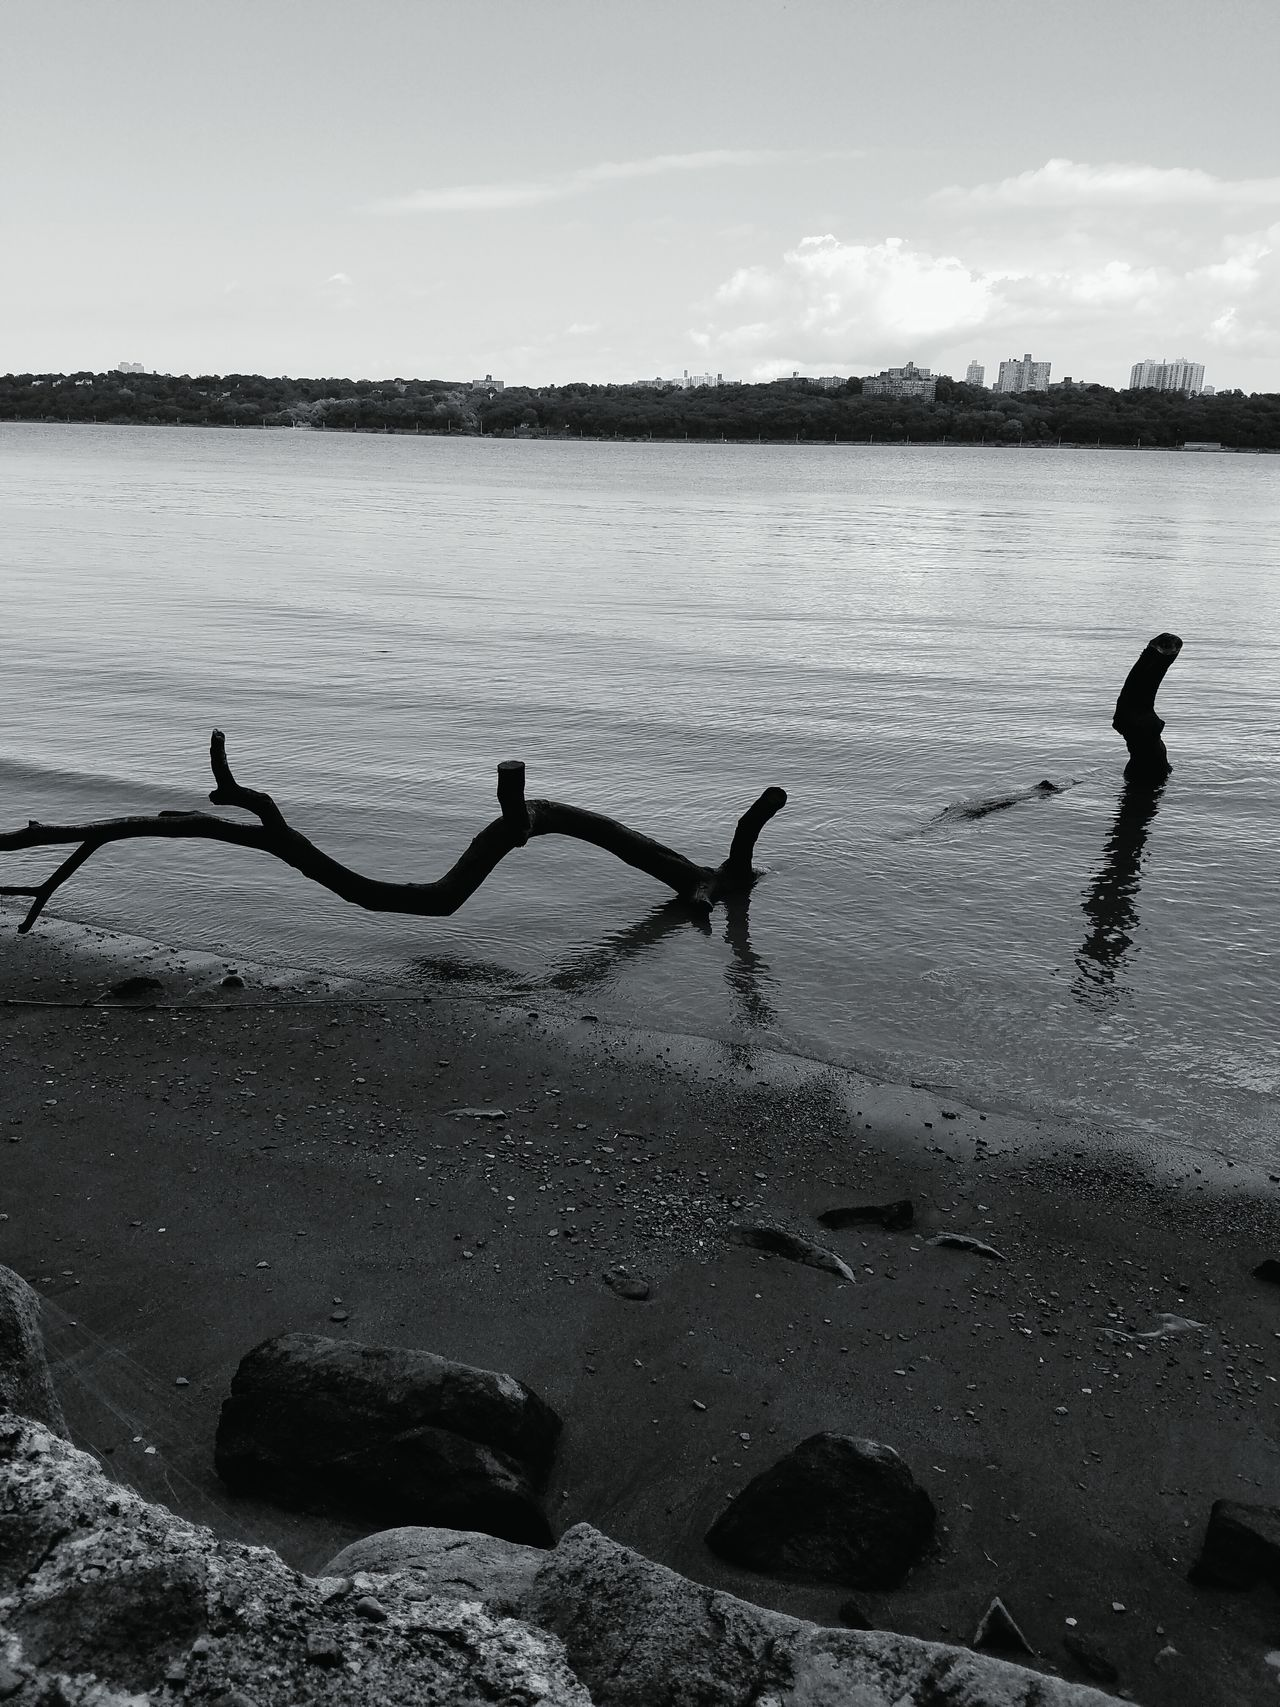 lochness by the Hudson NYC Hudson River Loch Ness Nature Beachside Shoreline Beauty In Nature Palisades Park Black & White Perspective Photography